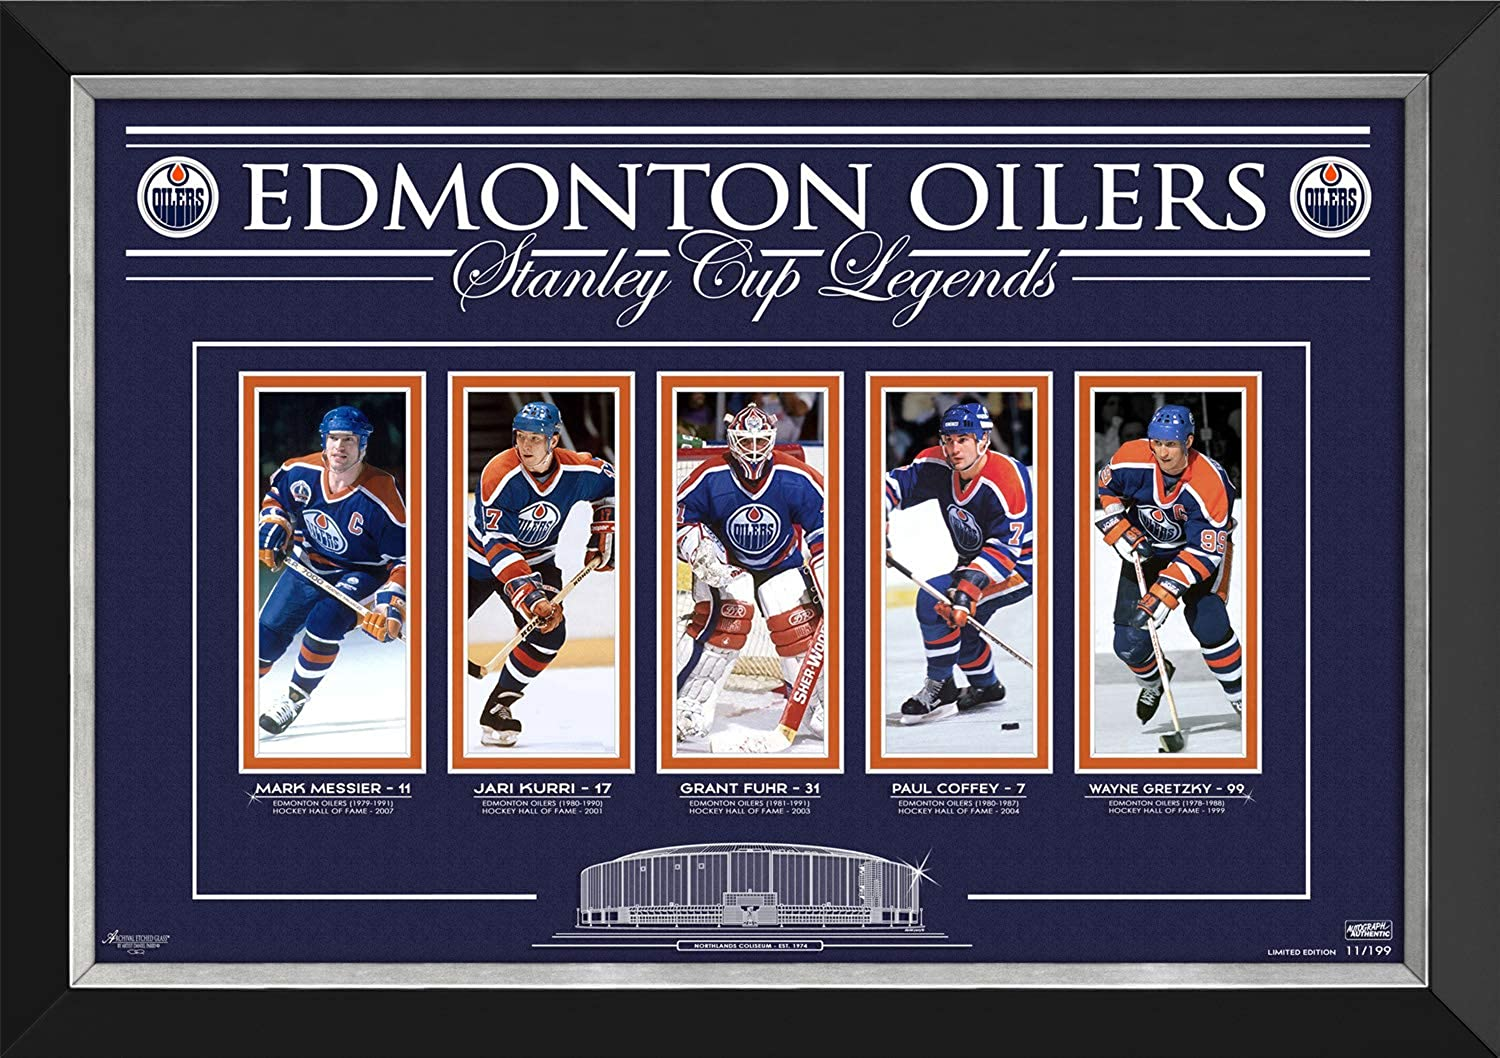 Edmonton Oilers Stanley Cup Legends Limited Edition 11 199  Laser Etched Glass